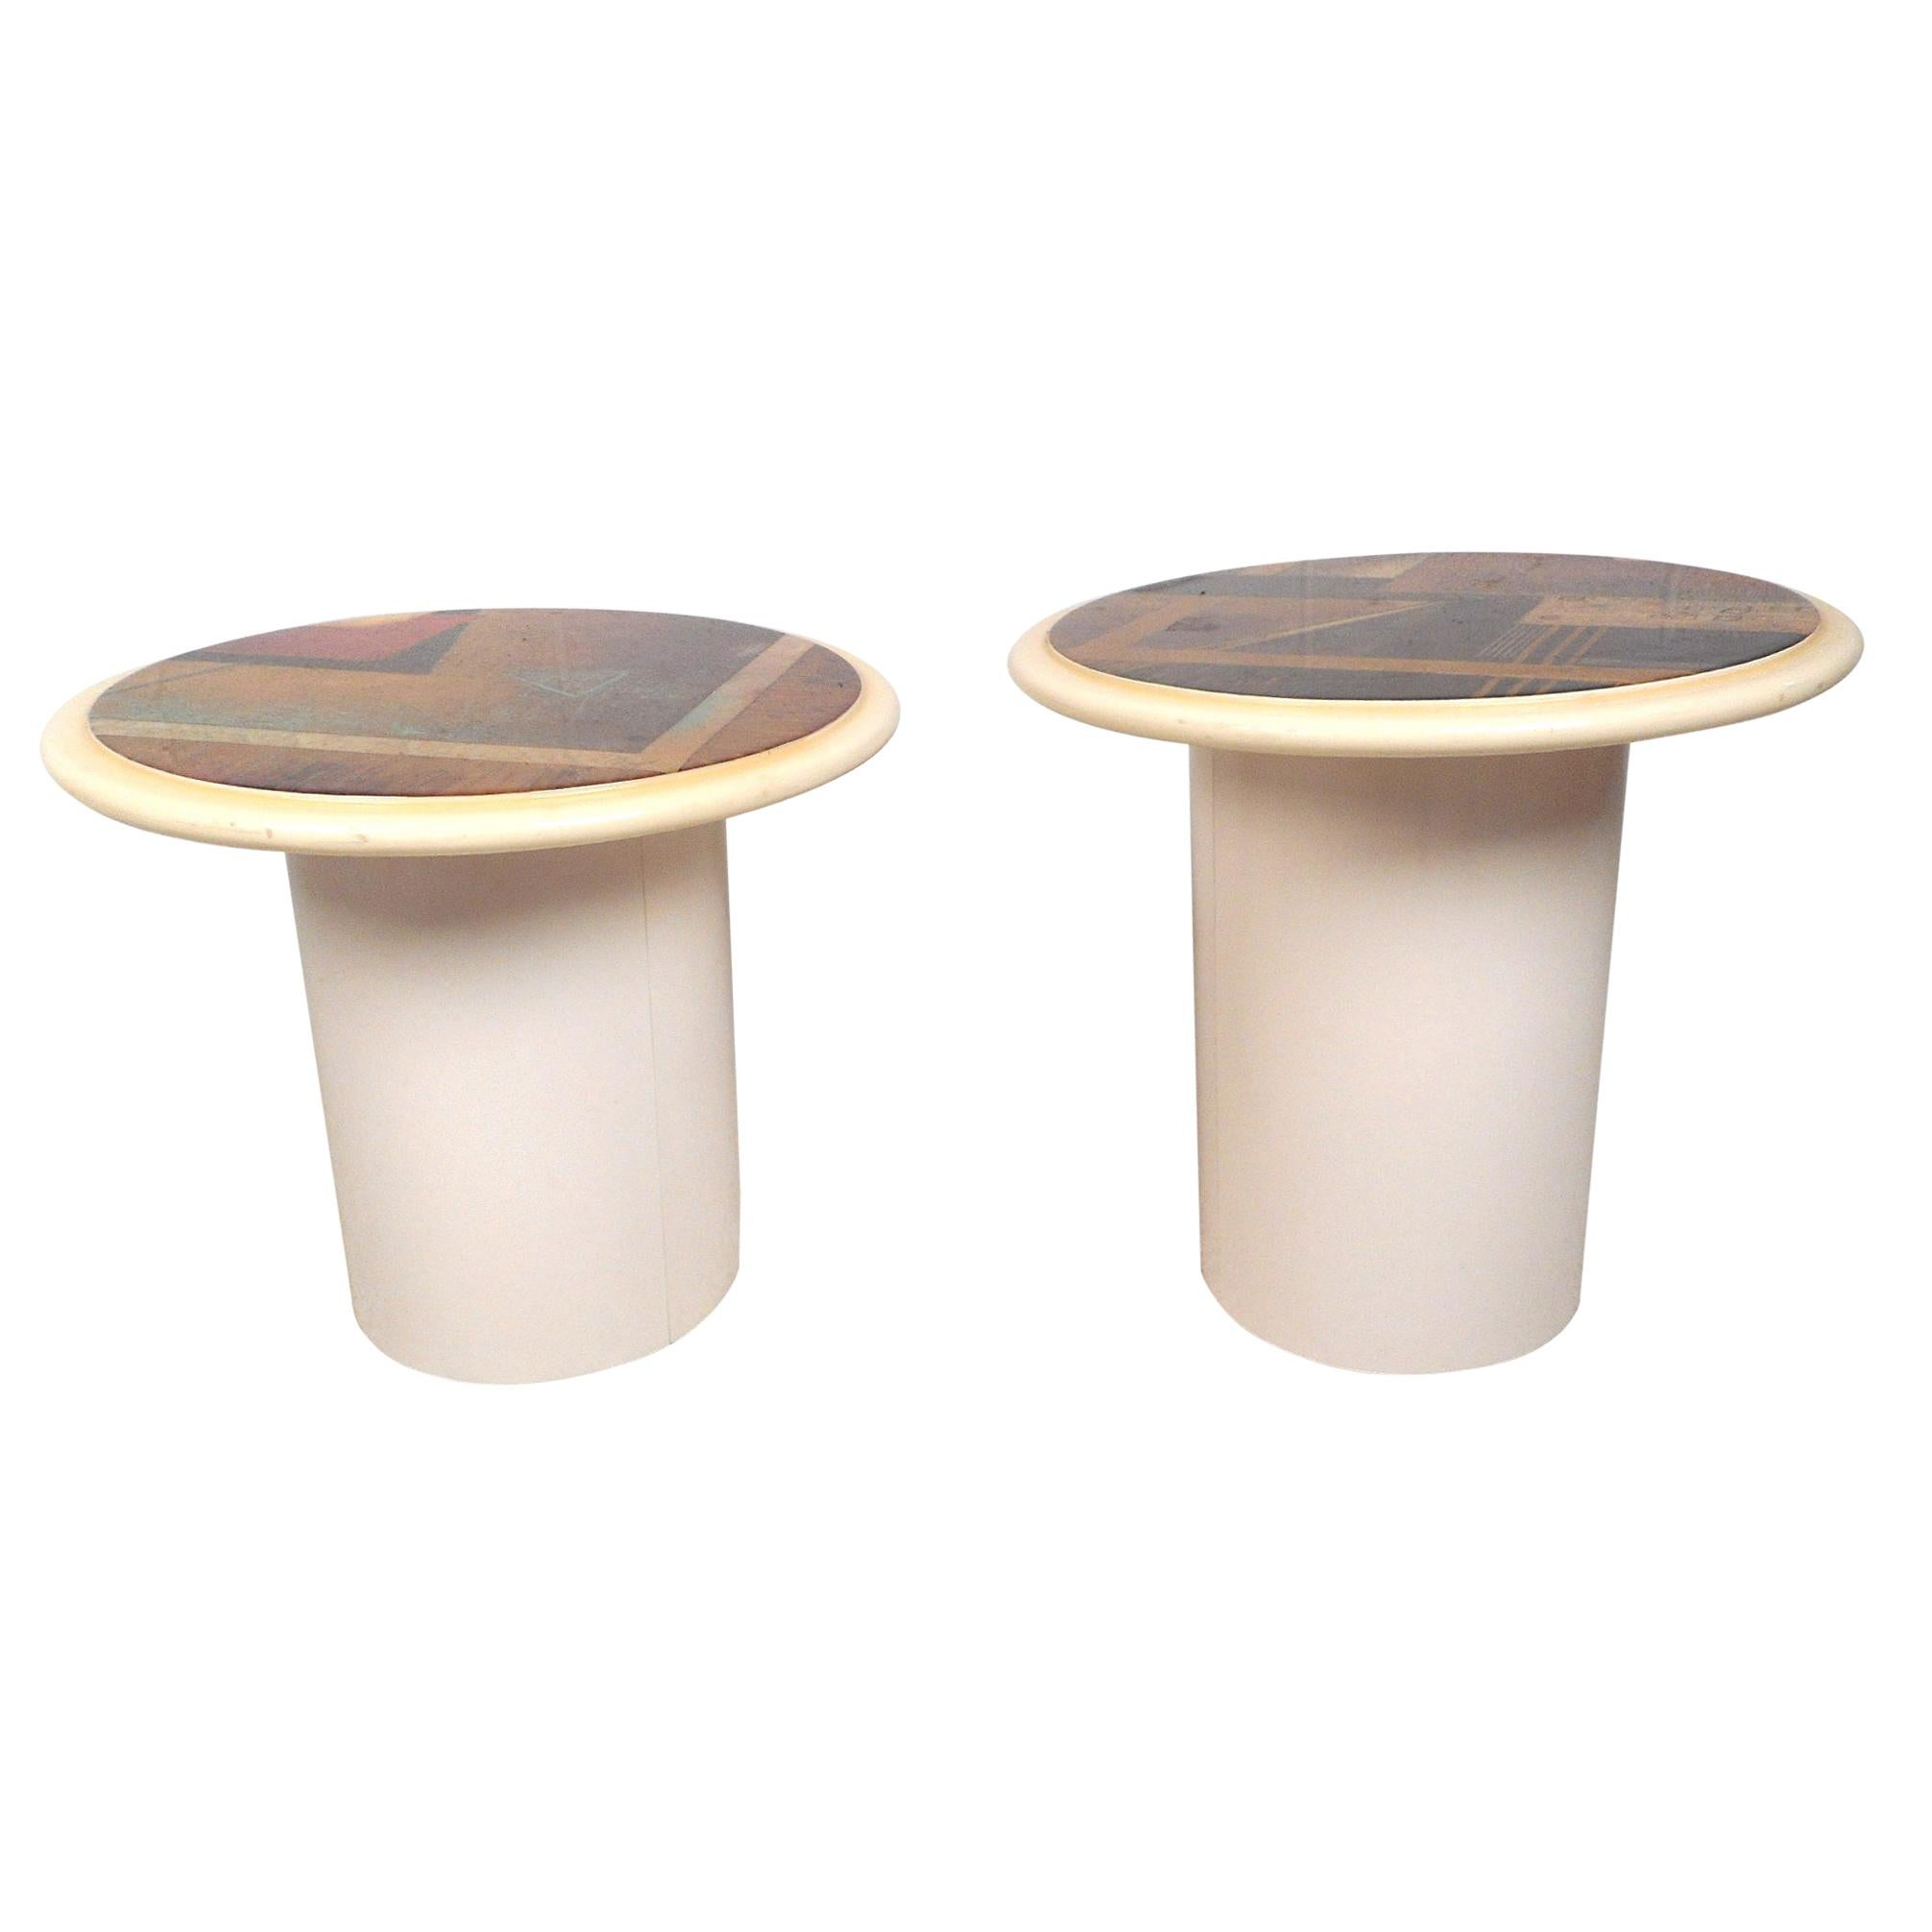 Pair of Vintage Modern Circular End Tables with Illustrated Tops